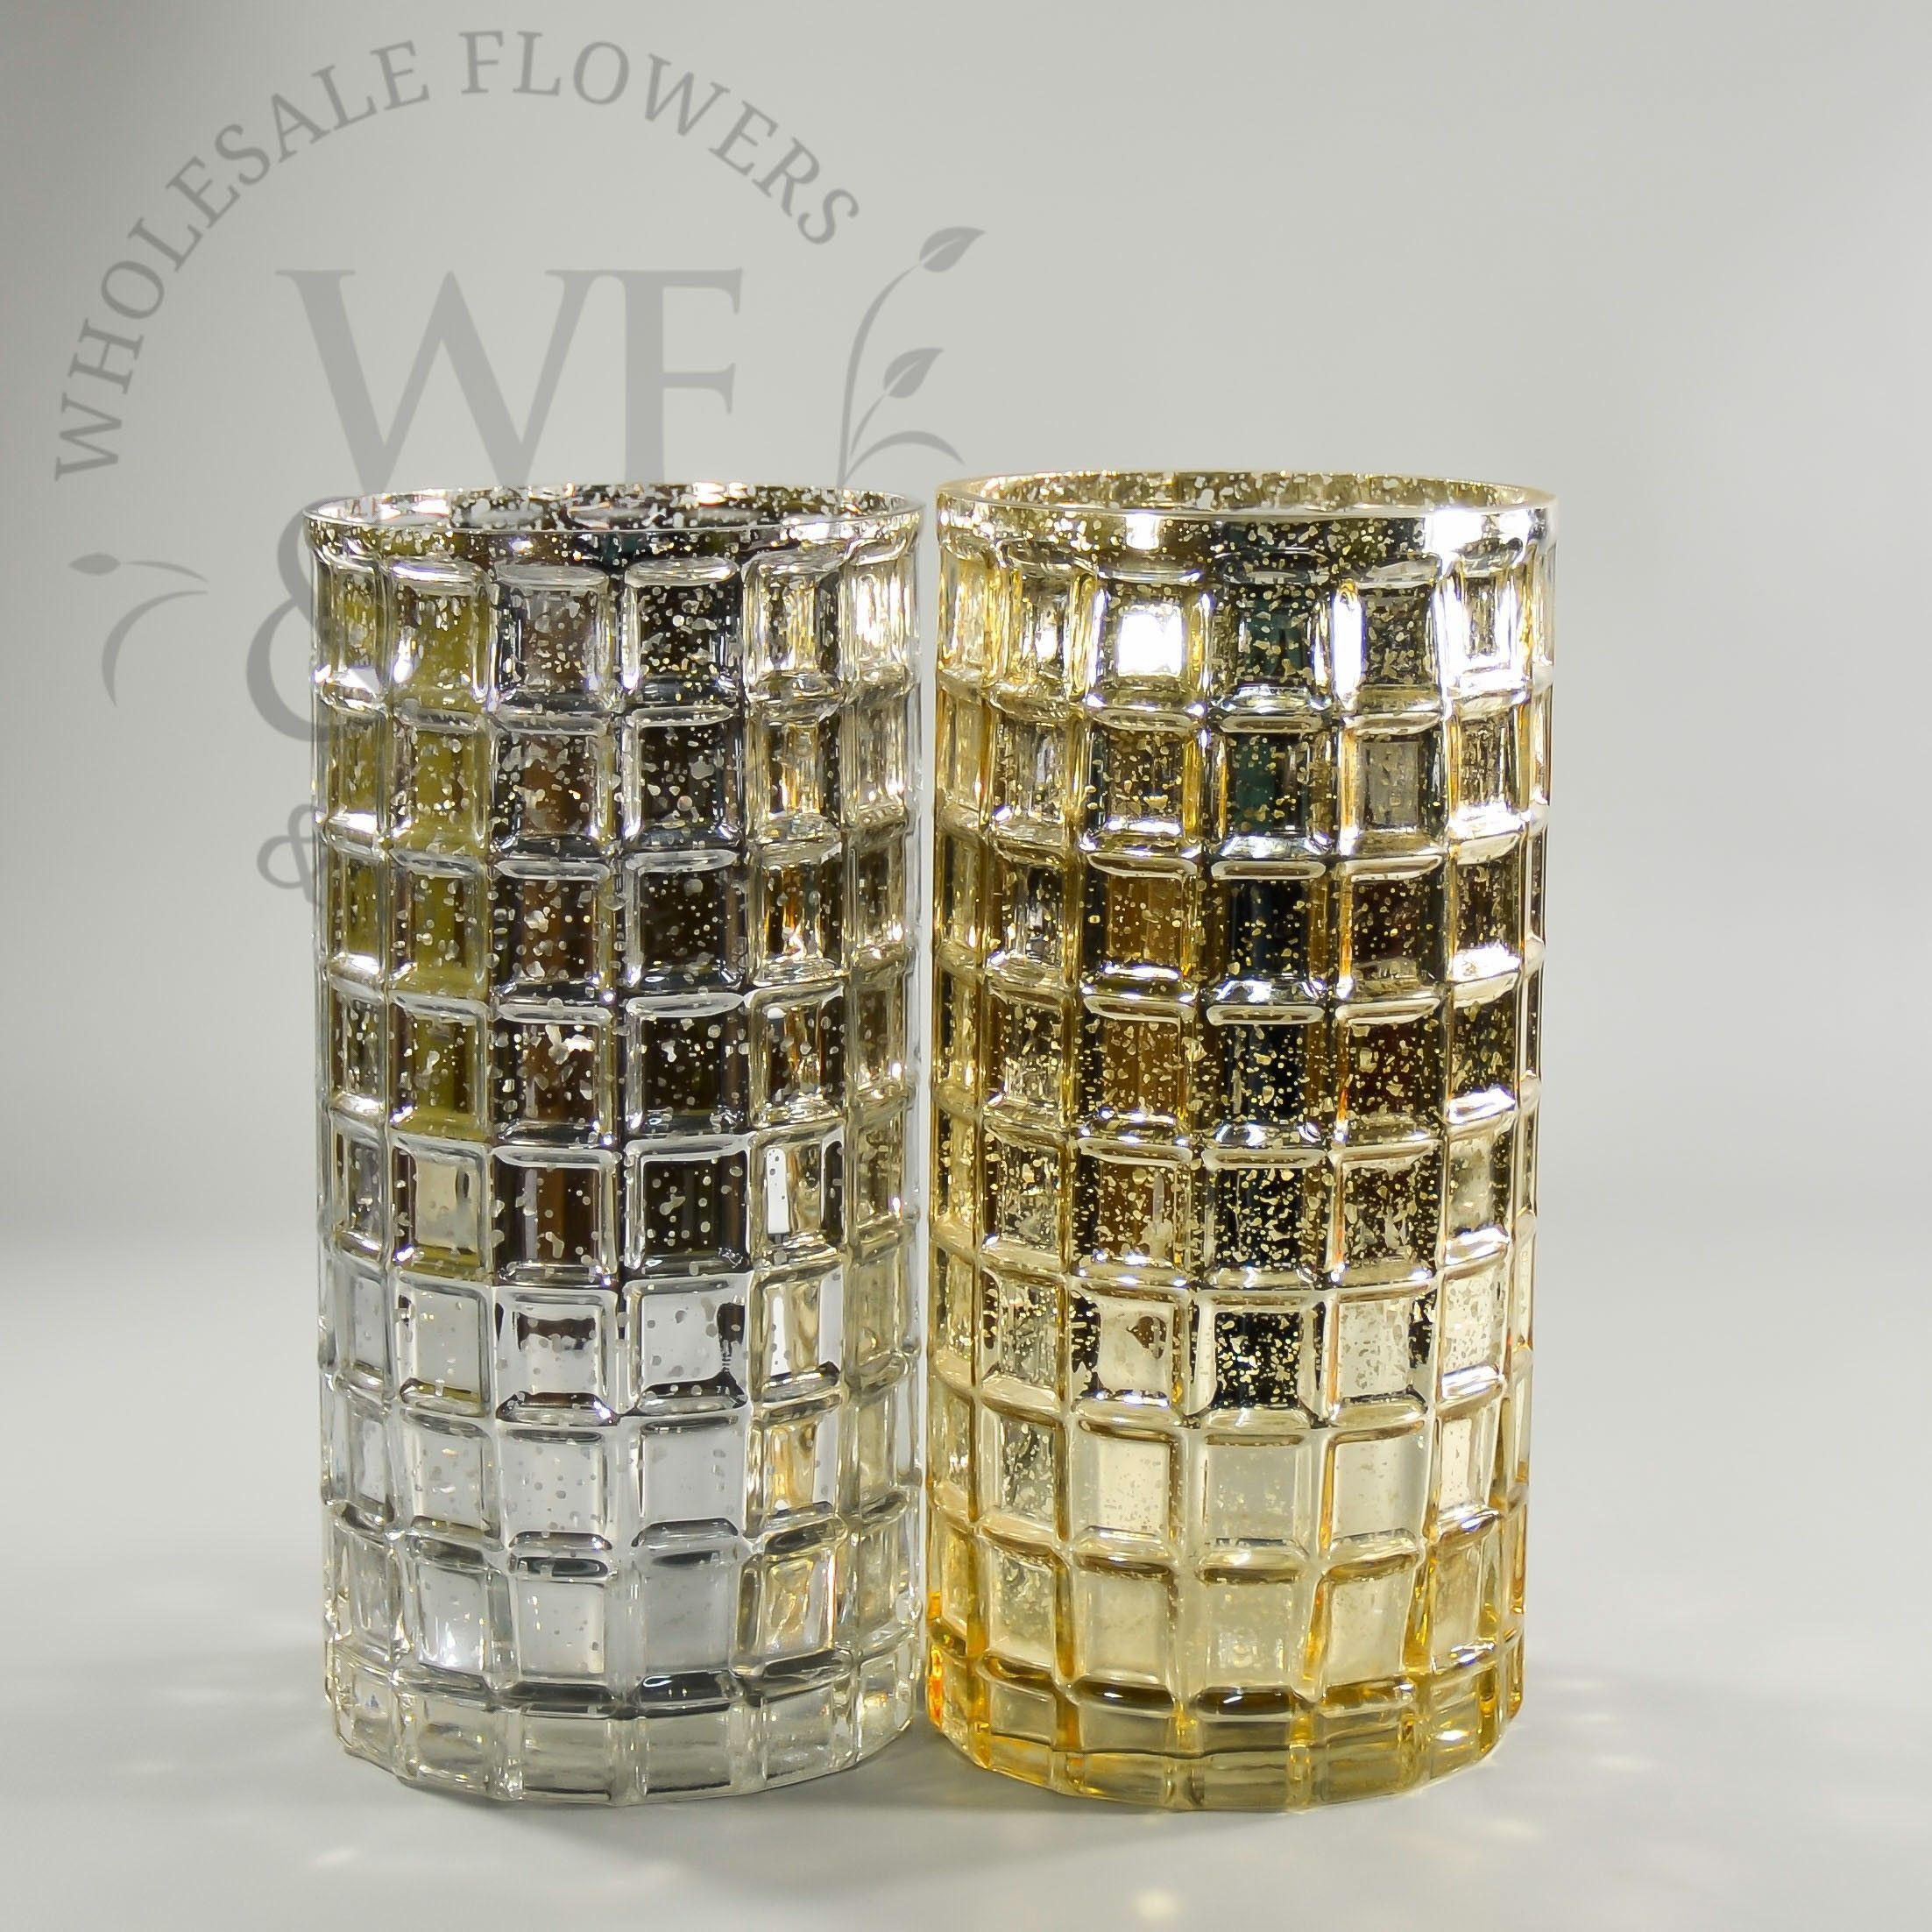 wholesale glass vases los angeles ca of 44 gold and silver vase the weekly world with gold cylinder vases collection silver and gold mercury glass mosaic